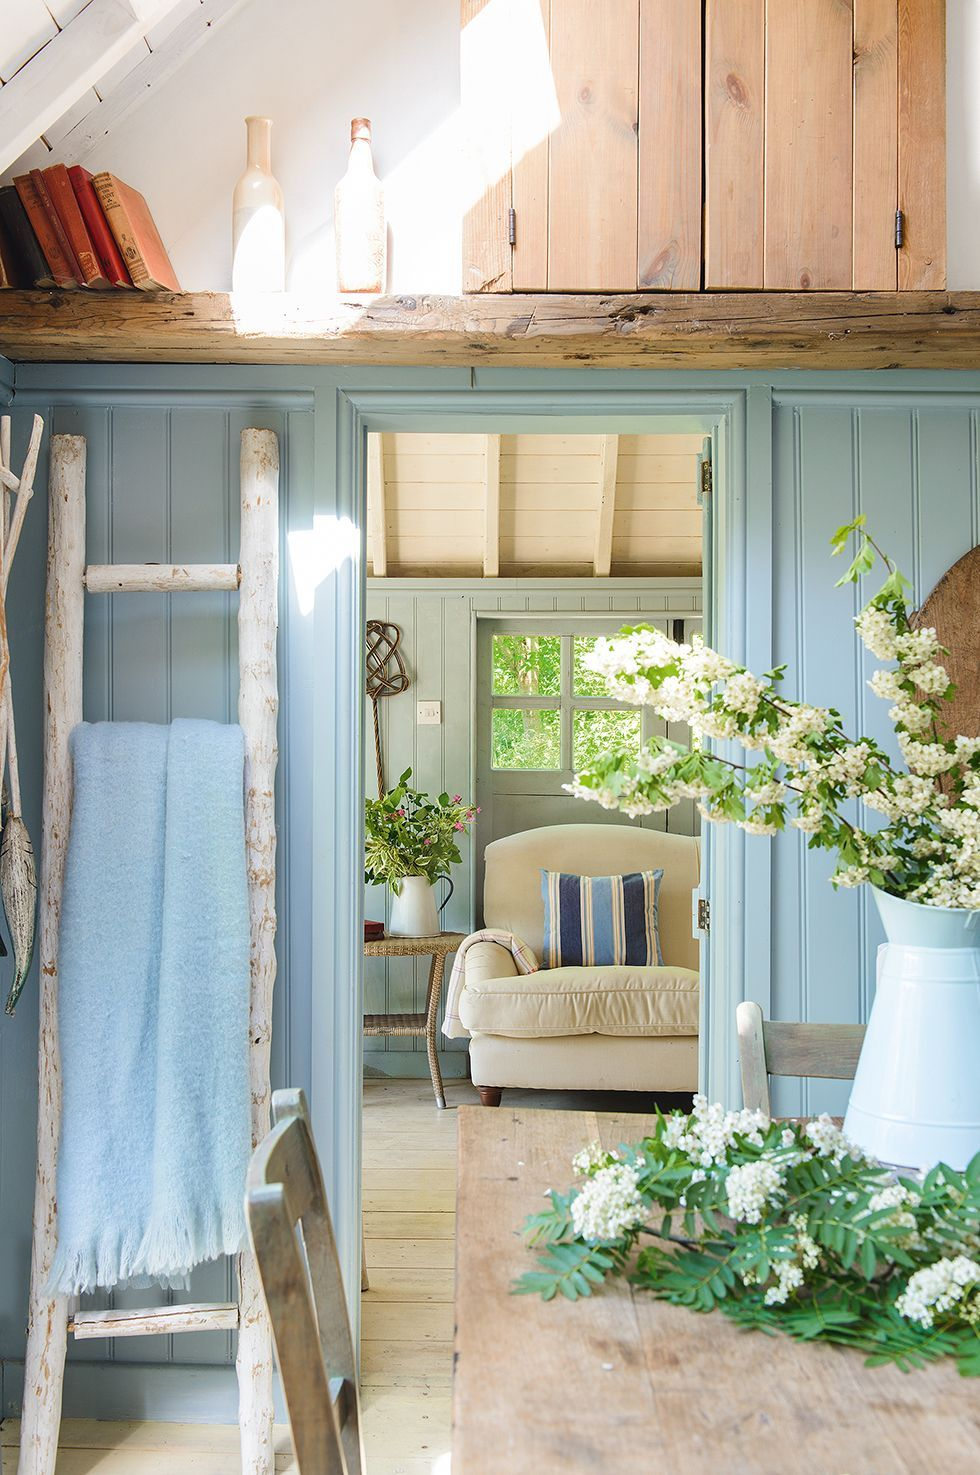 5 Summer House Interior Ideas To Copy This Weekend They Work For Sheds Too Real Homes